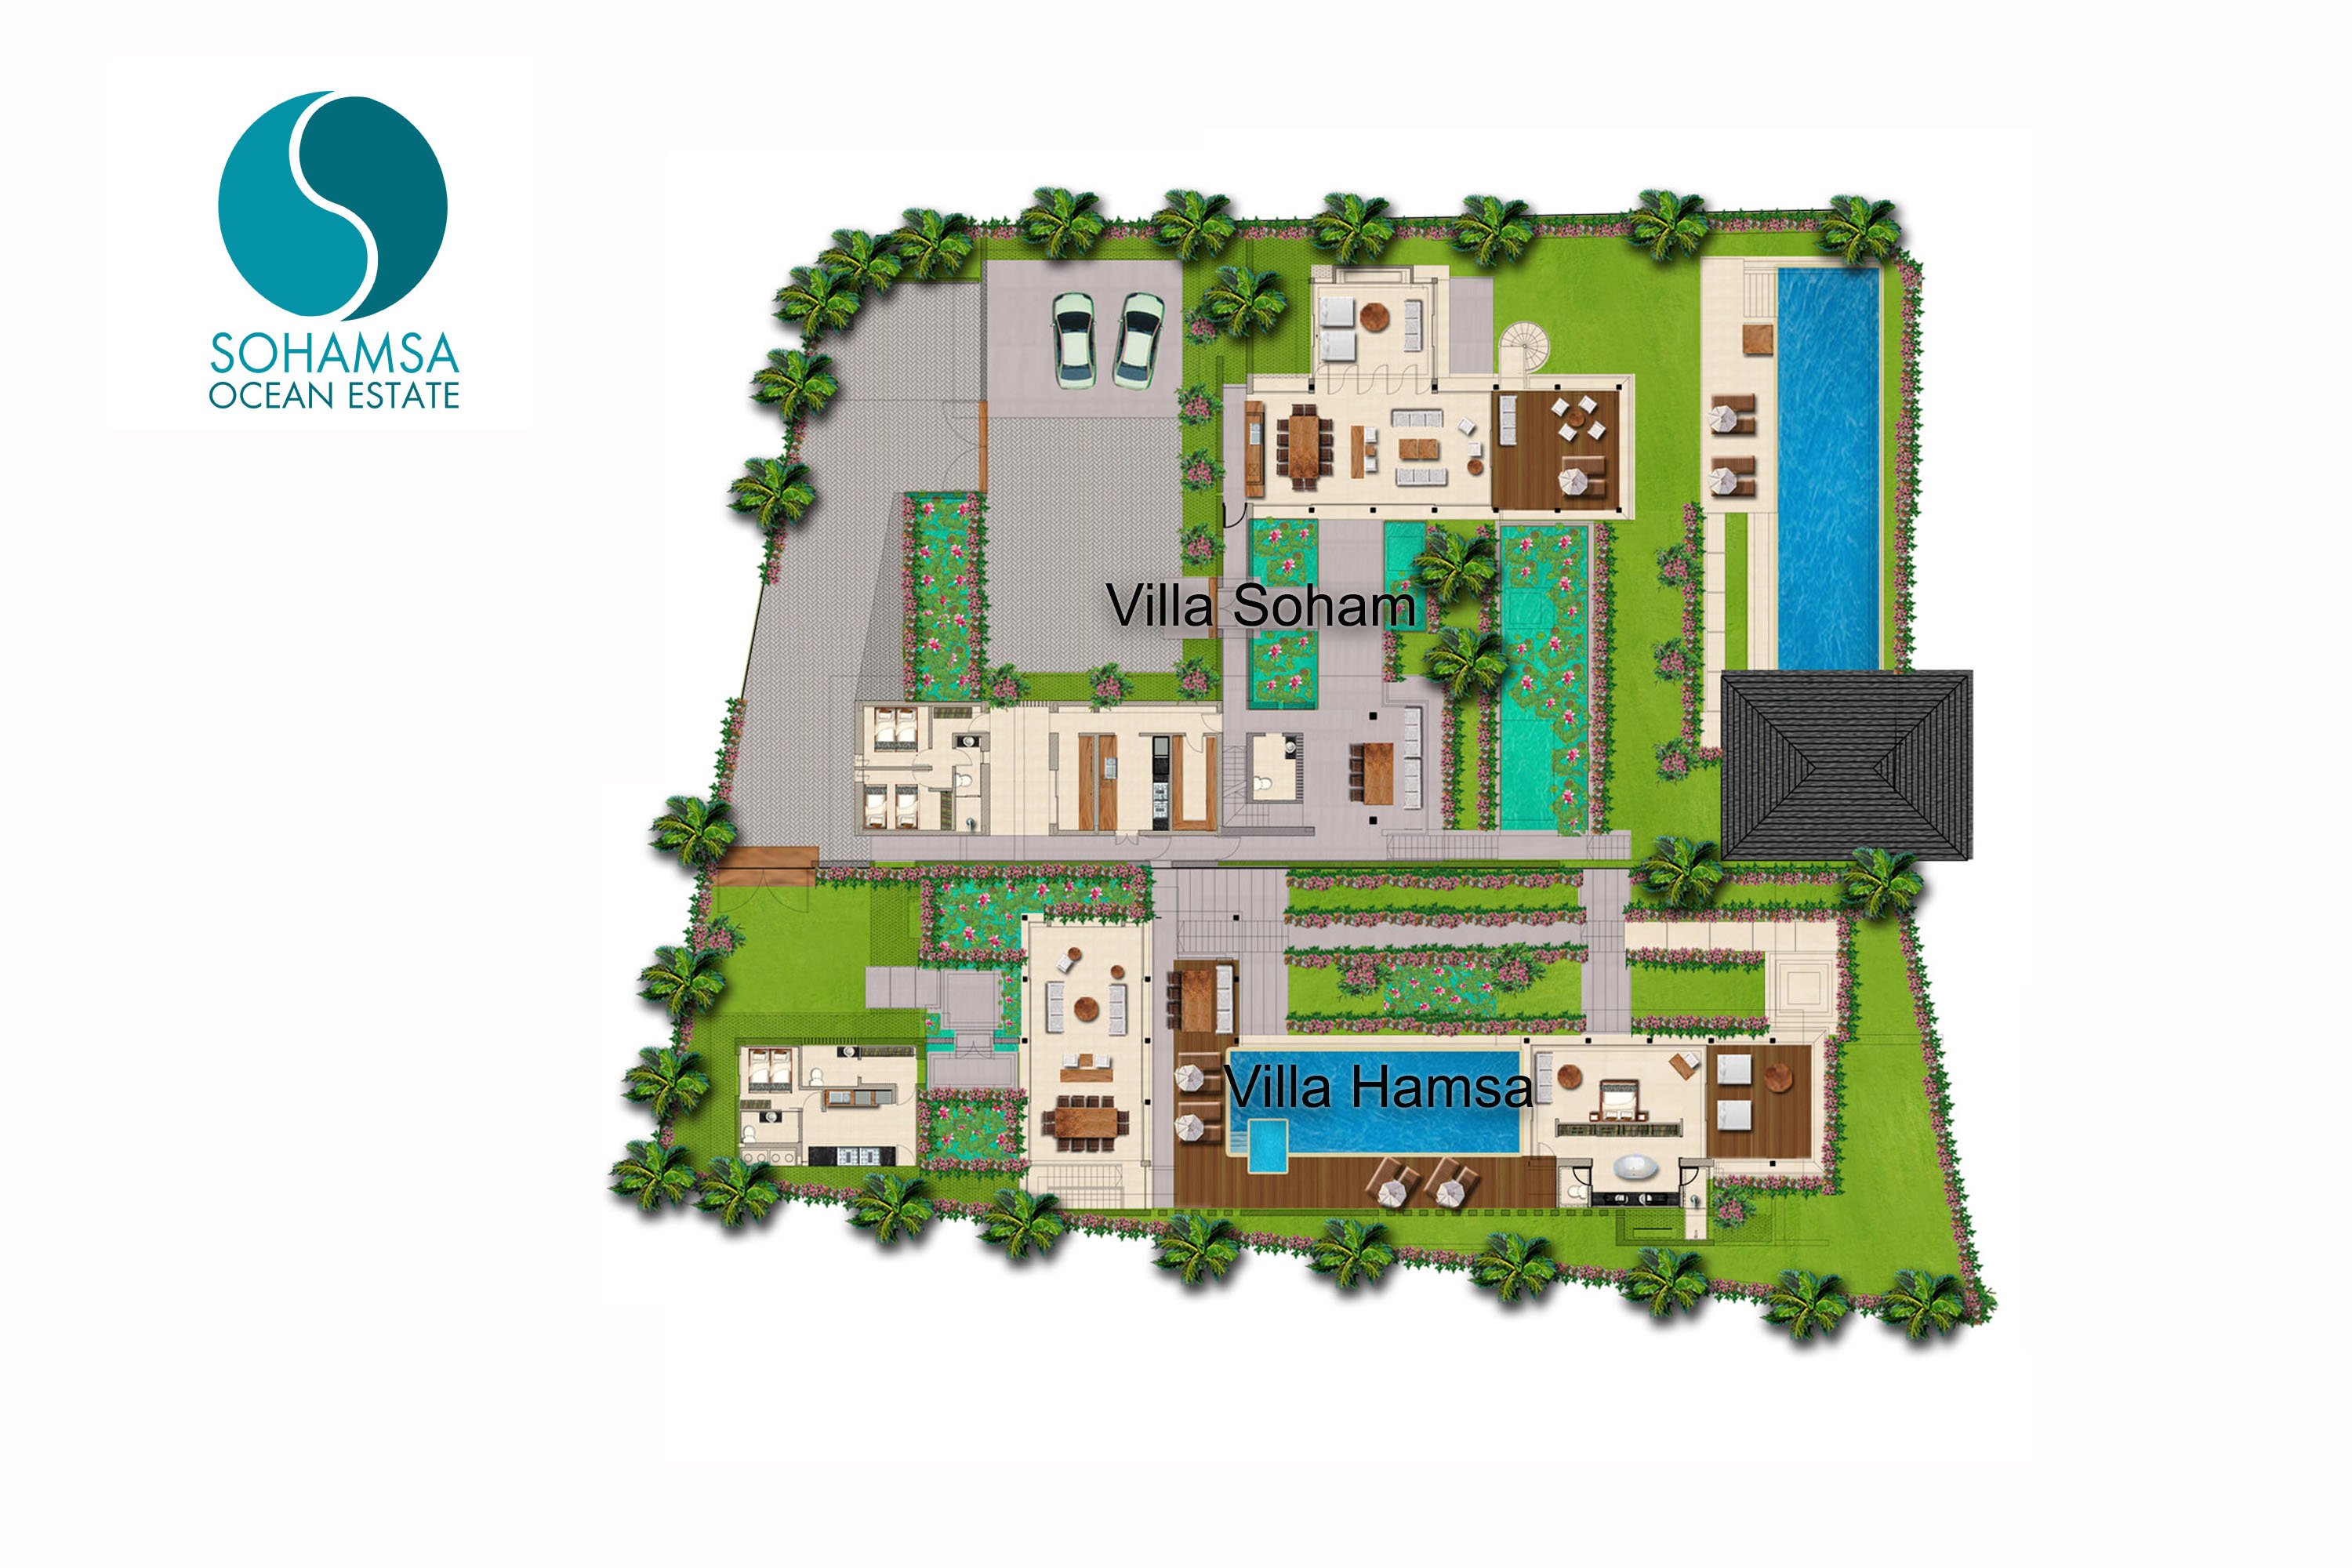 Sohamsa Ocean Estate - Floorplan